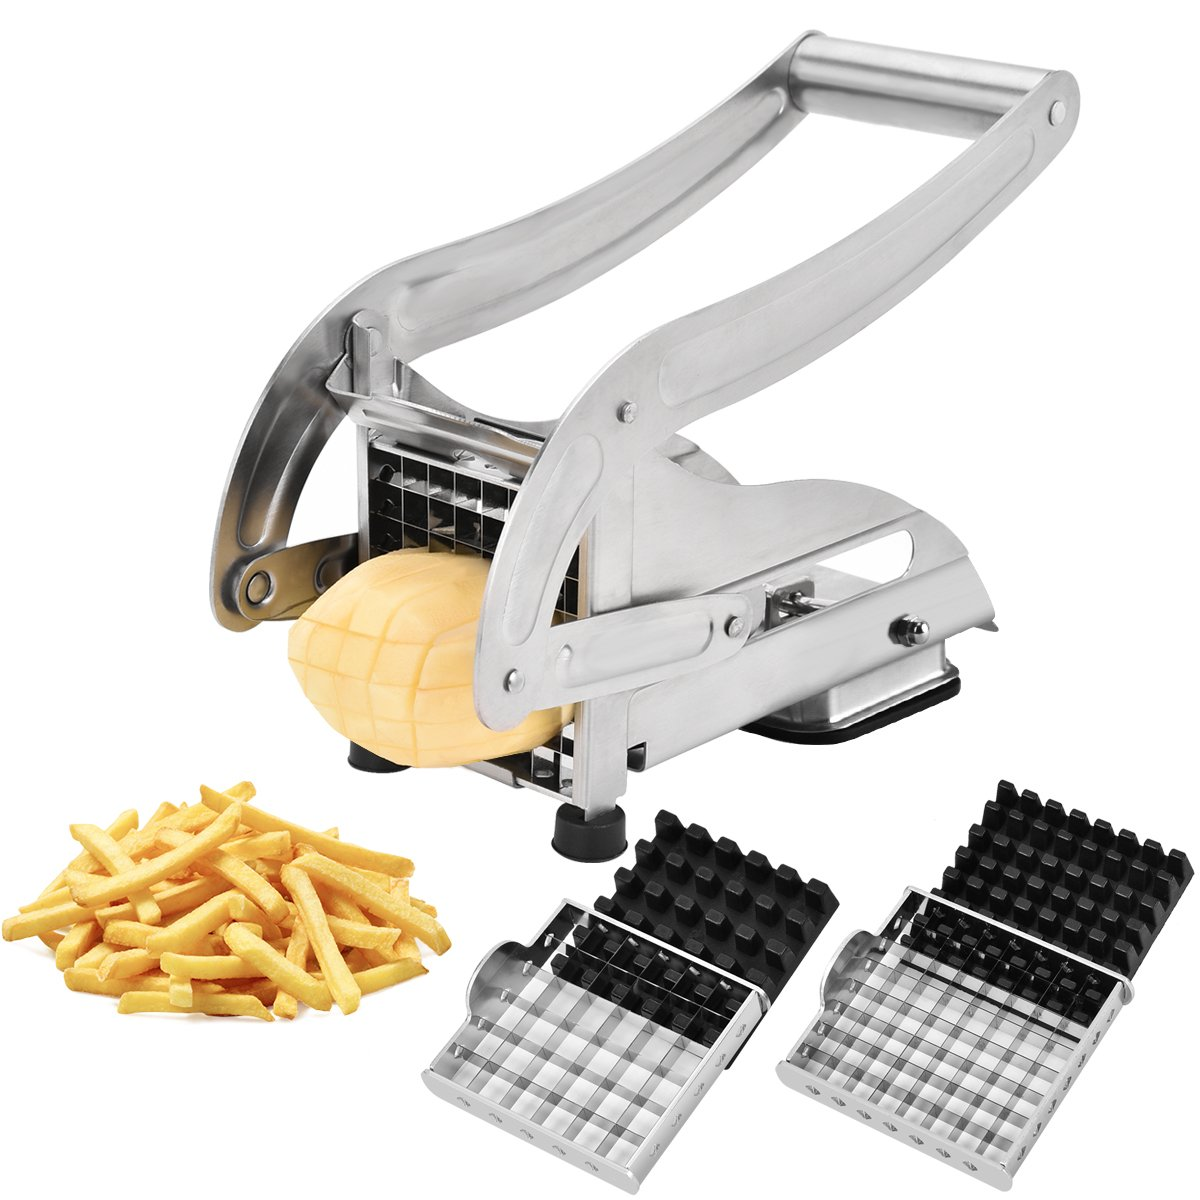 CUGLB Stainless Steel French Fries Potato Cutter with 2 Interchangeable Blades and Sucker Bottom for Fruit Veg into Finger Sticks